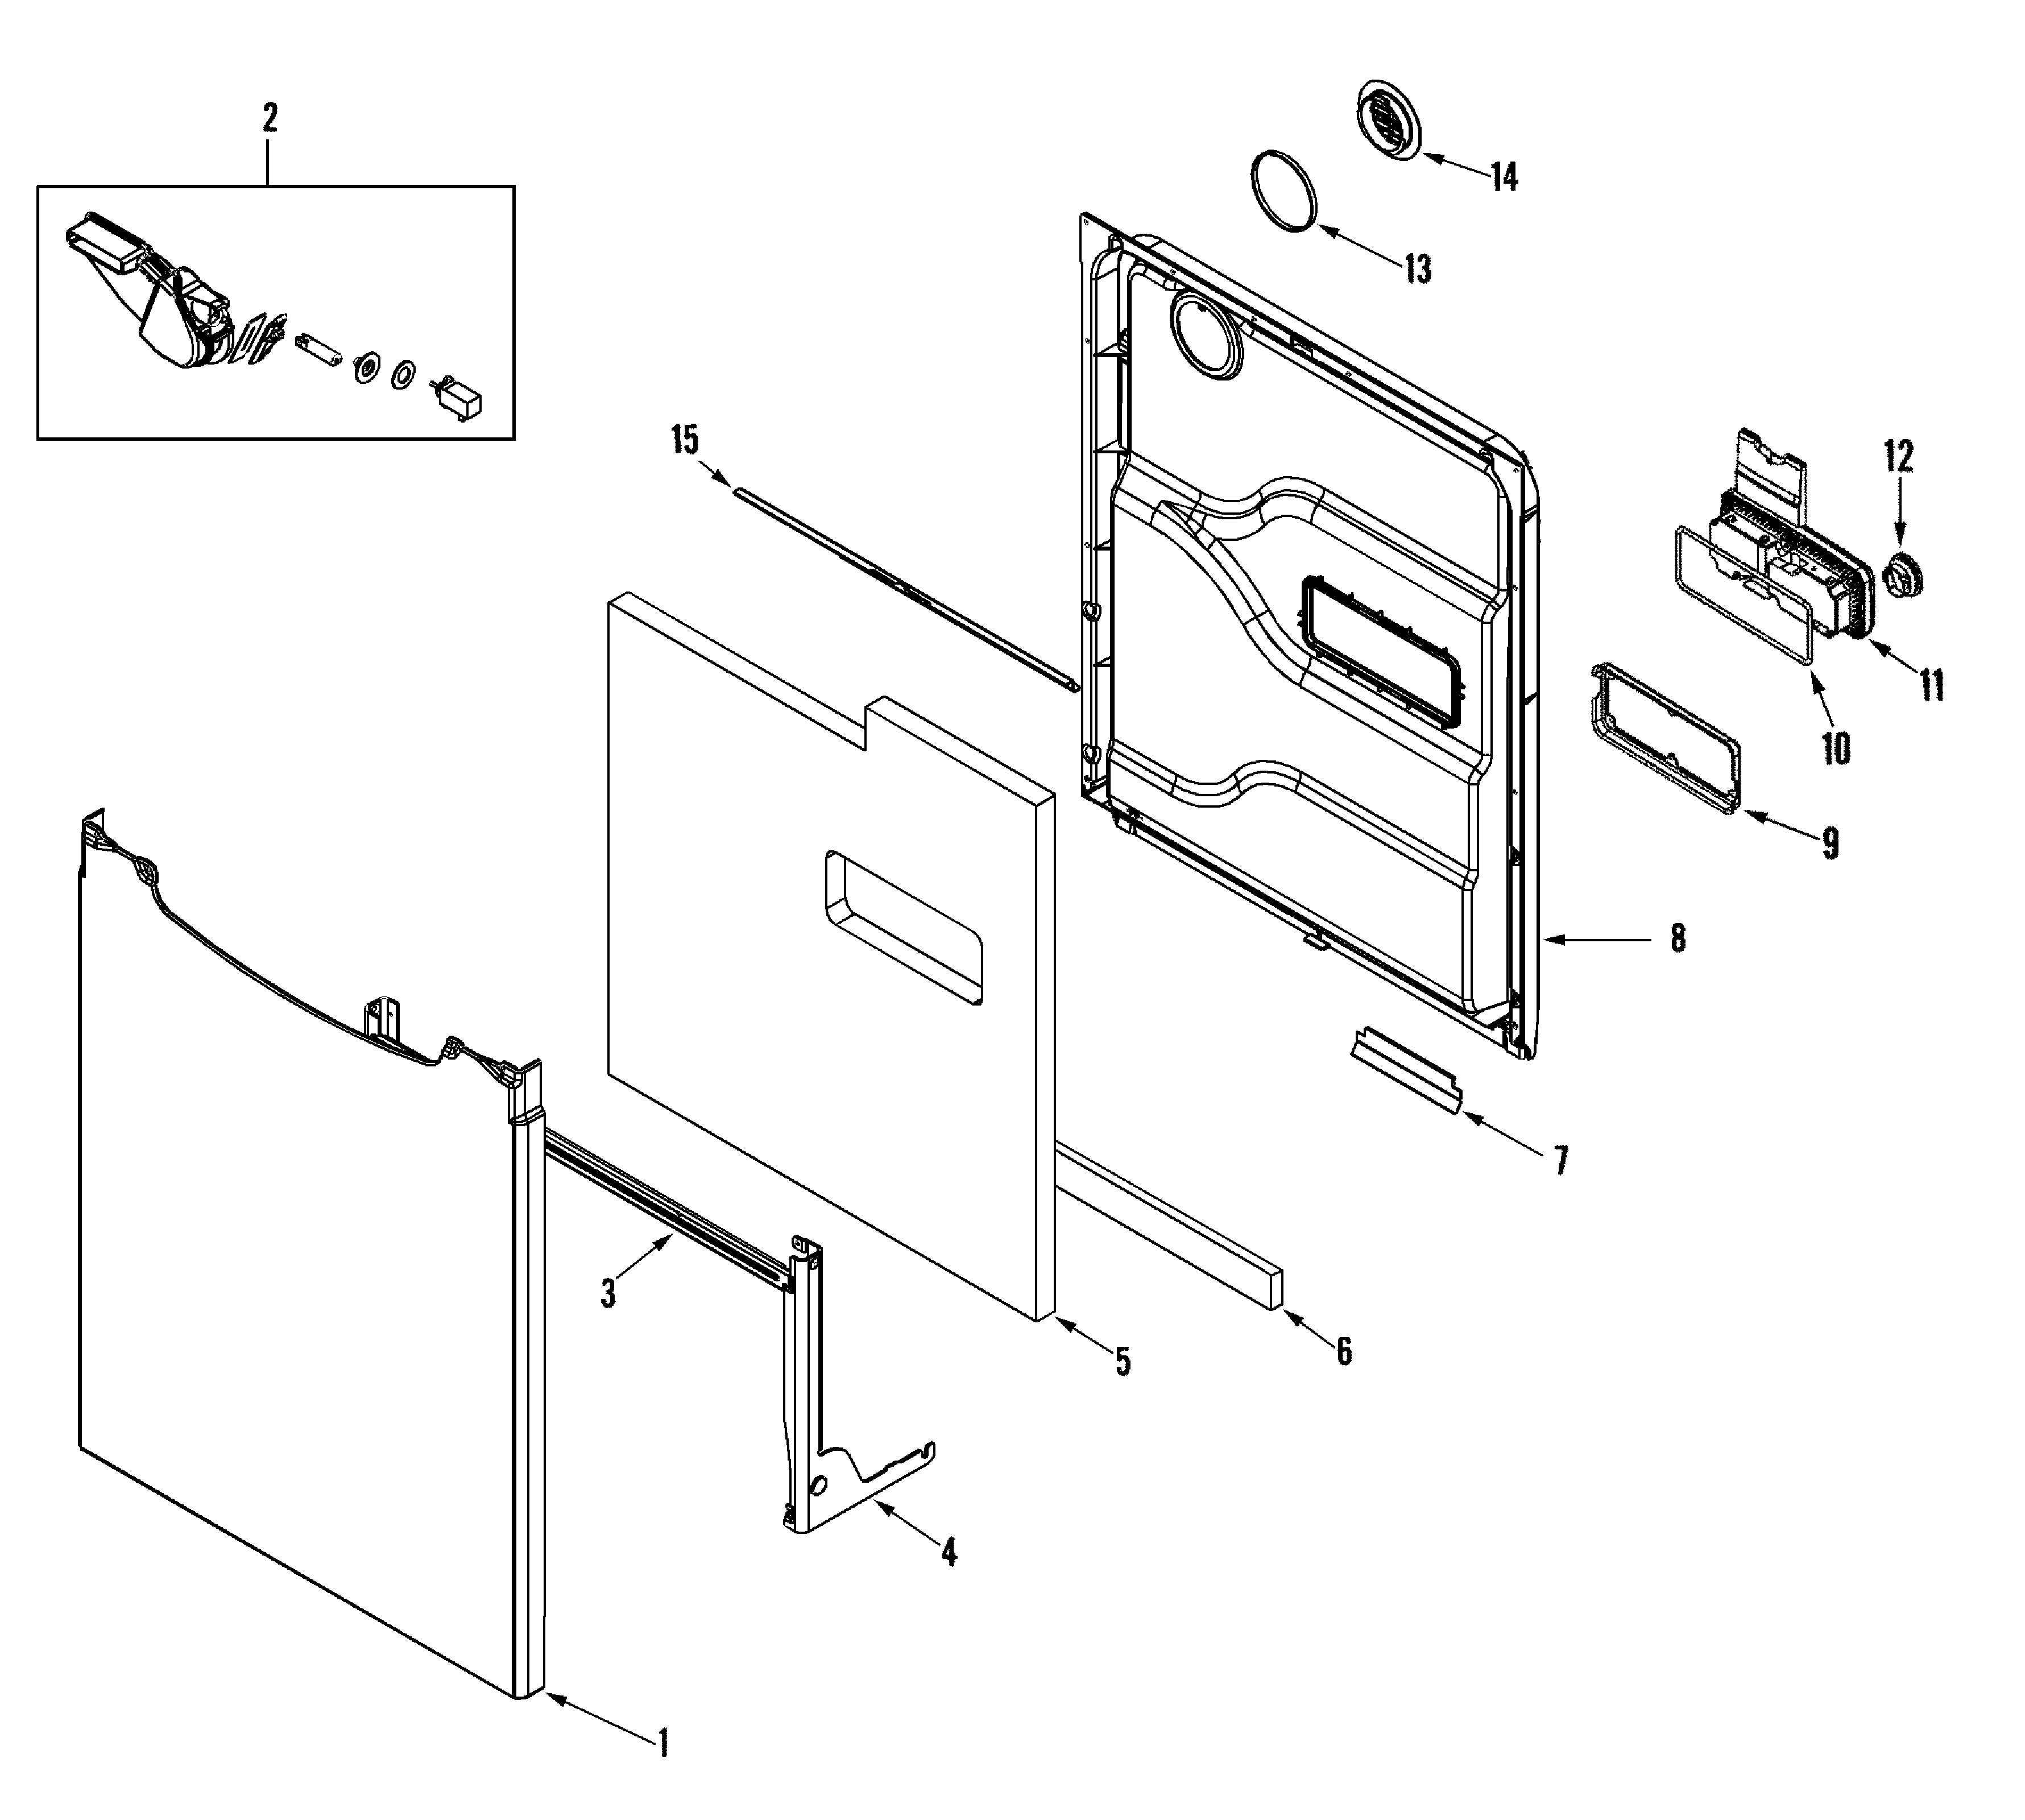 Have A Ge Dwb 8600 That Leaks From The Right Front Corner Of Kenmore Elite Dishwasher Model 665 Wiring Diagram